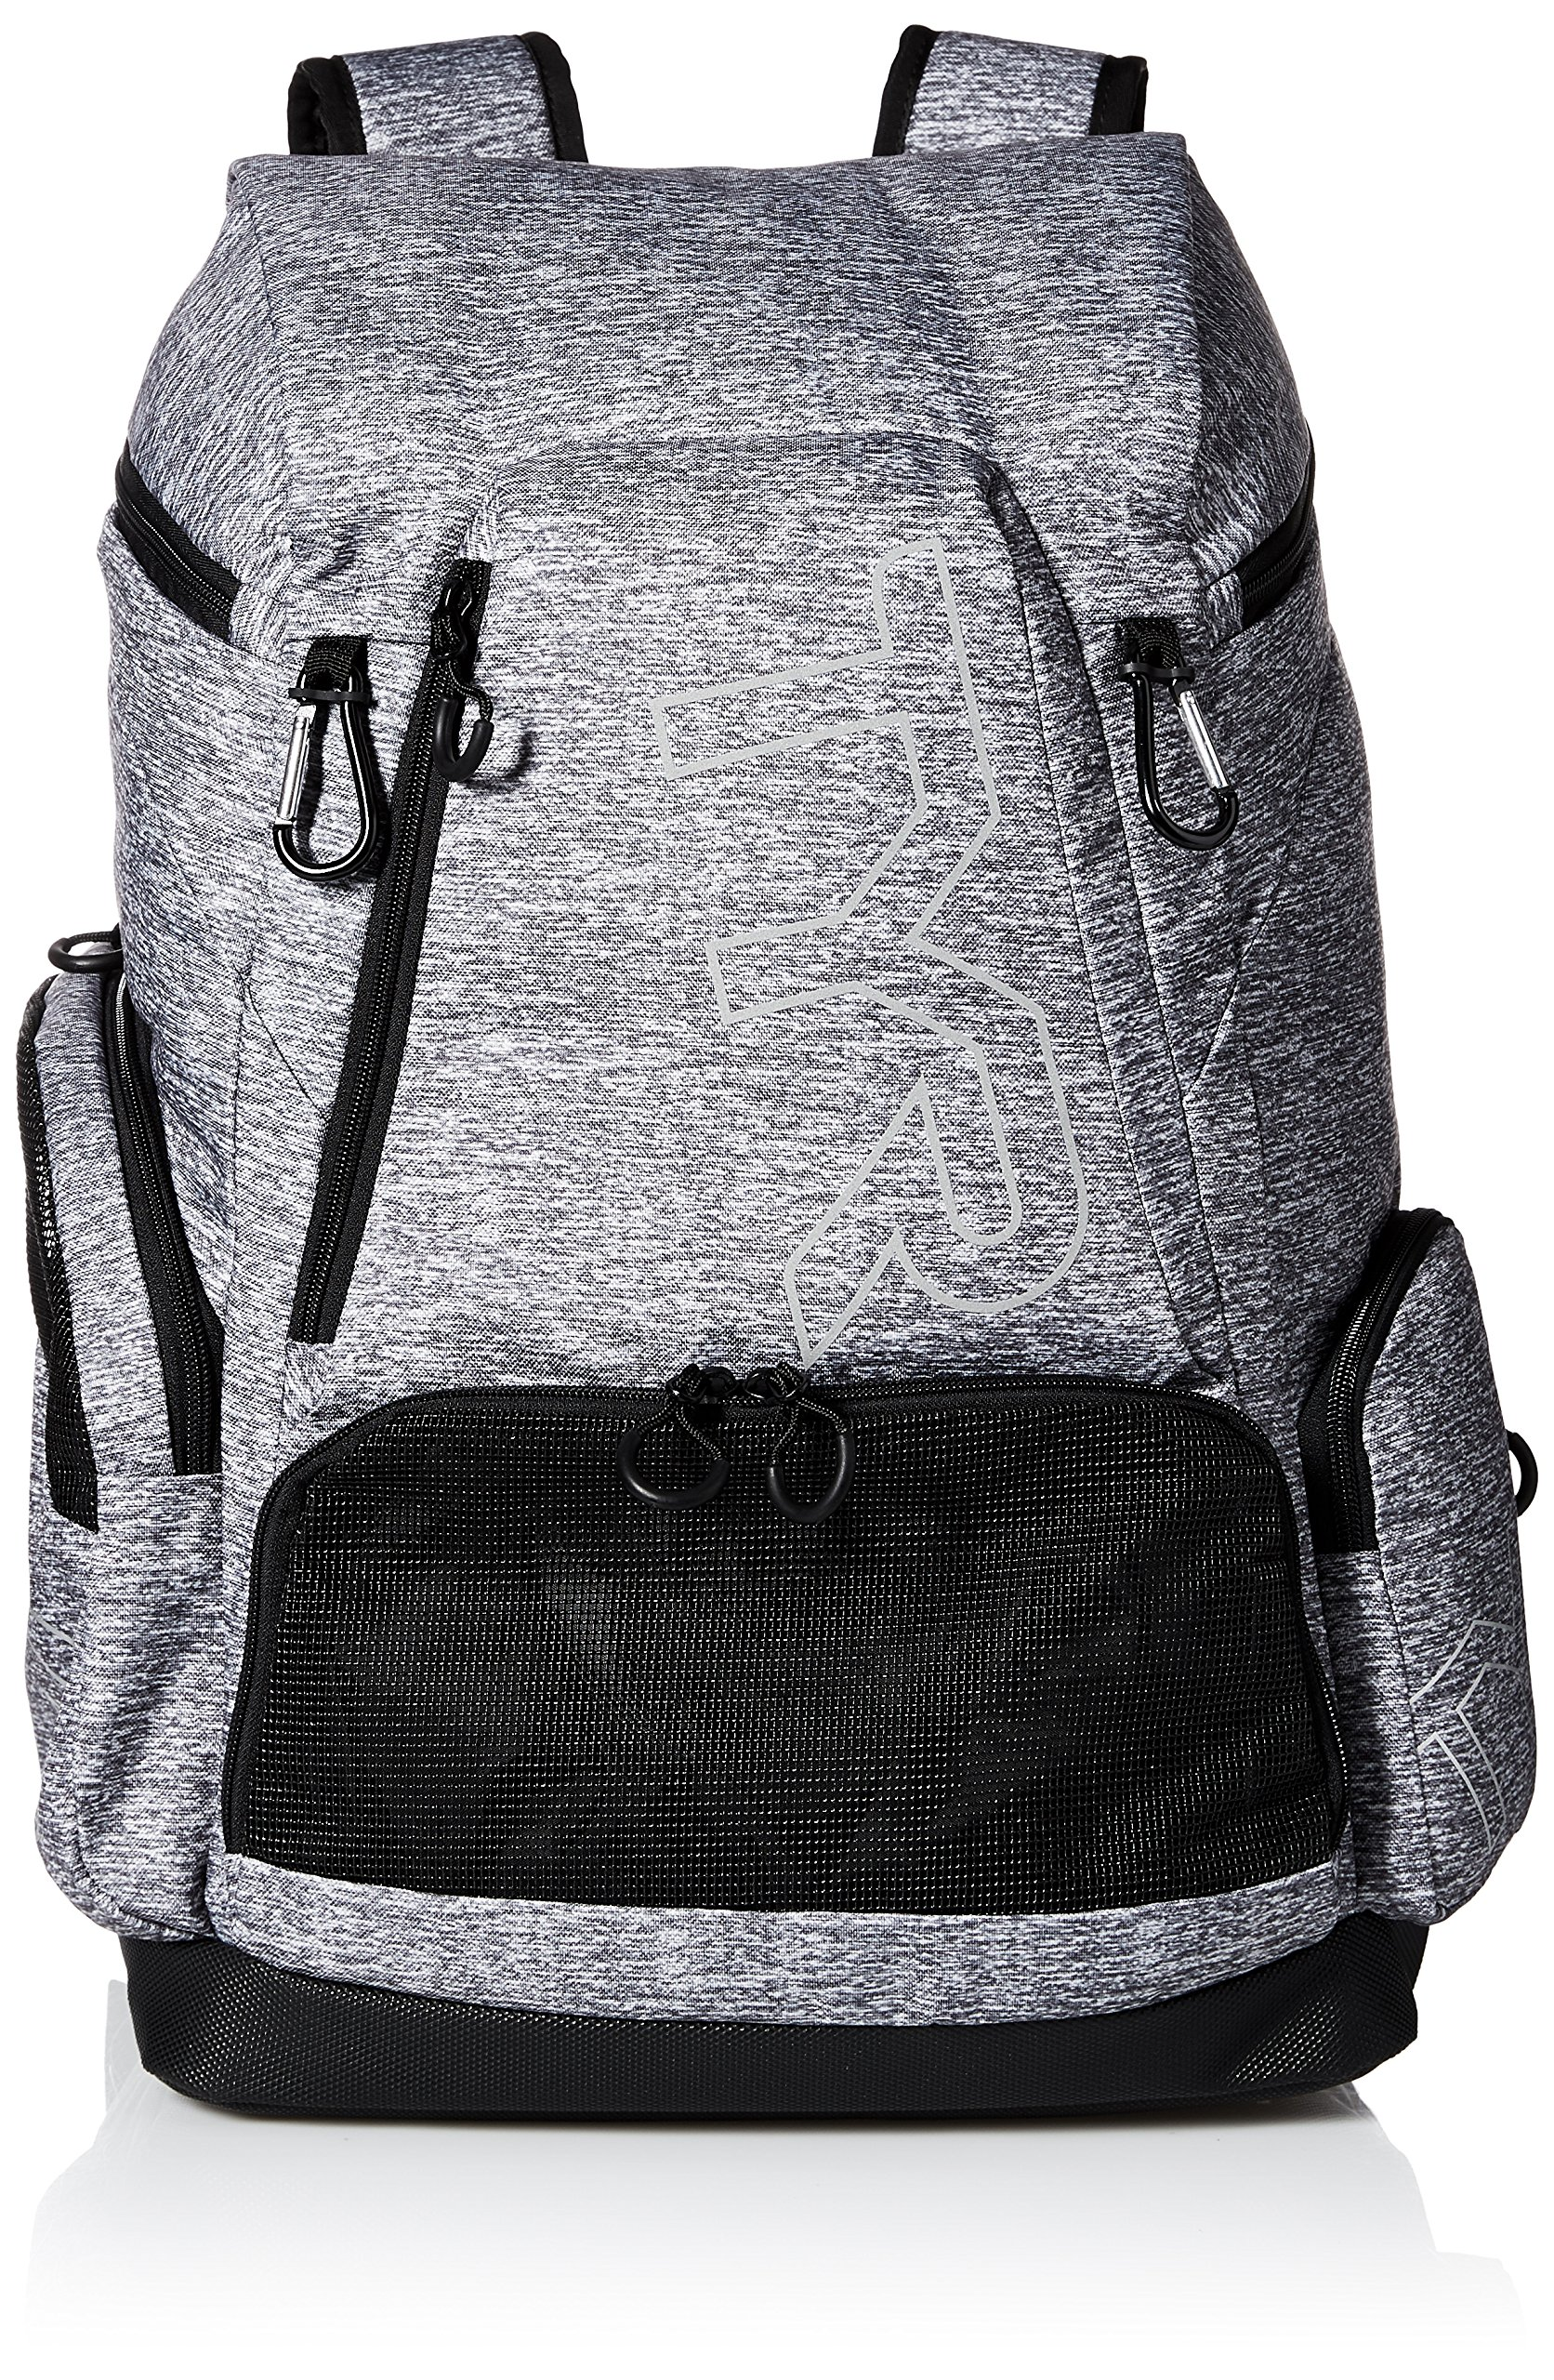 TYR Alliance 45 Liter Backpack, Heather Grey